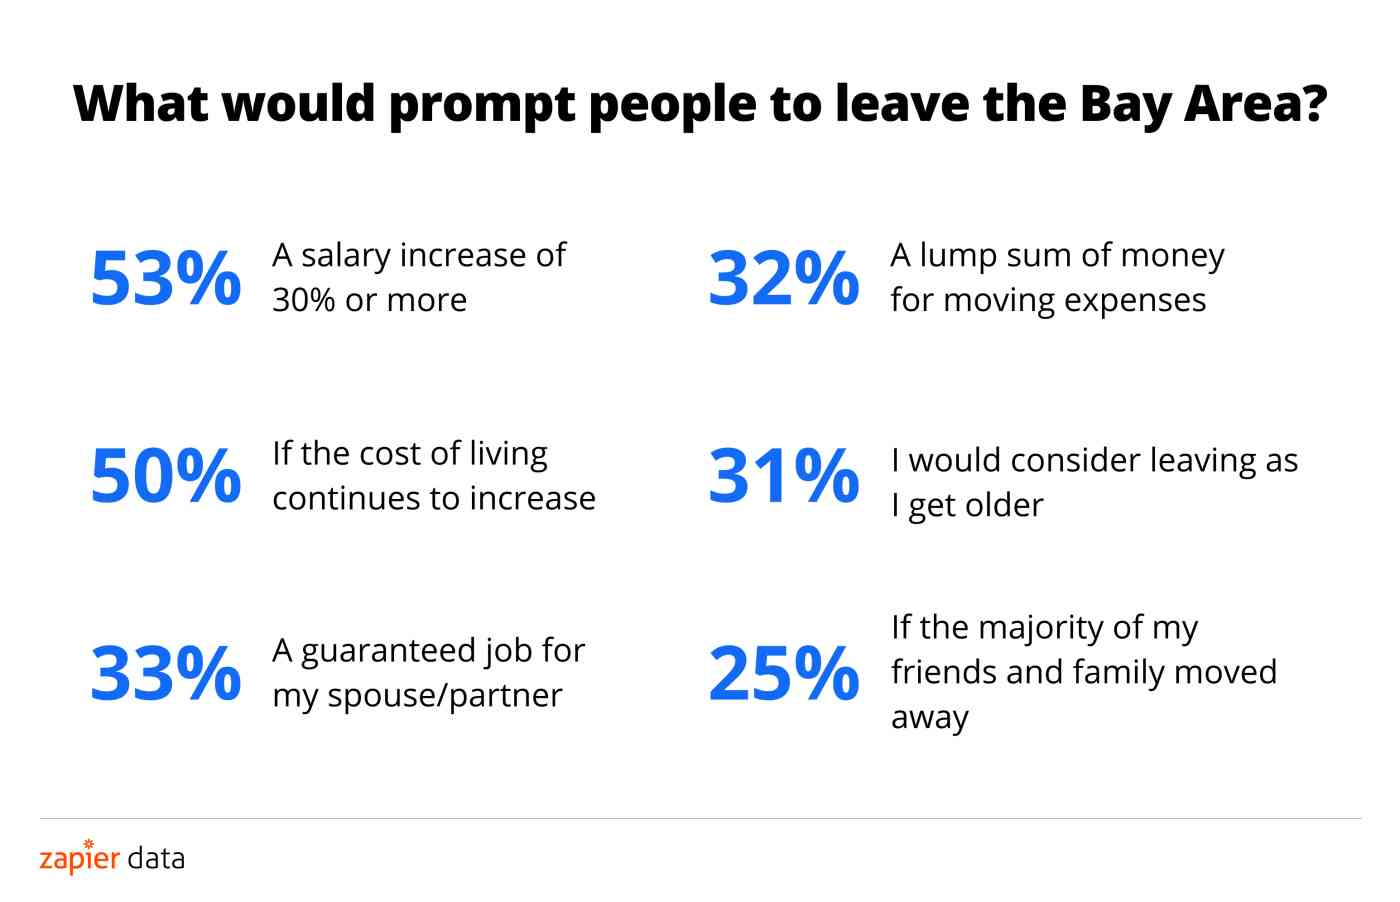 What would prompt residents to leave